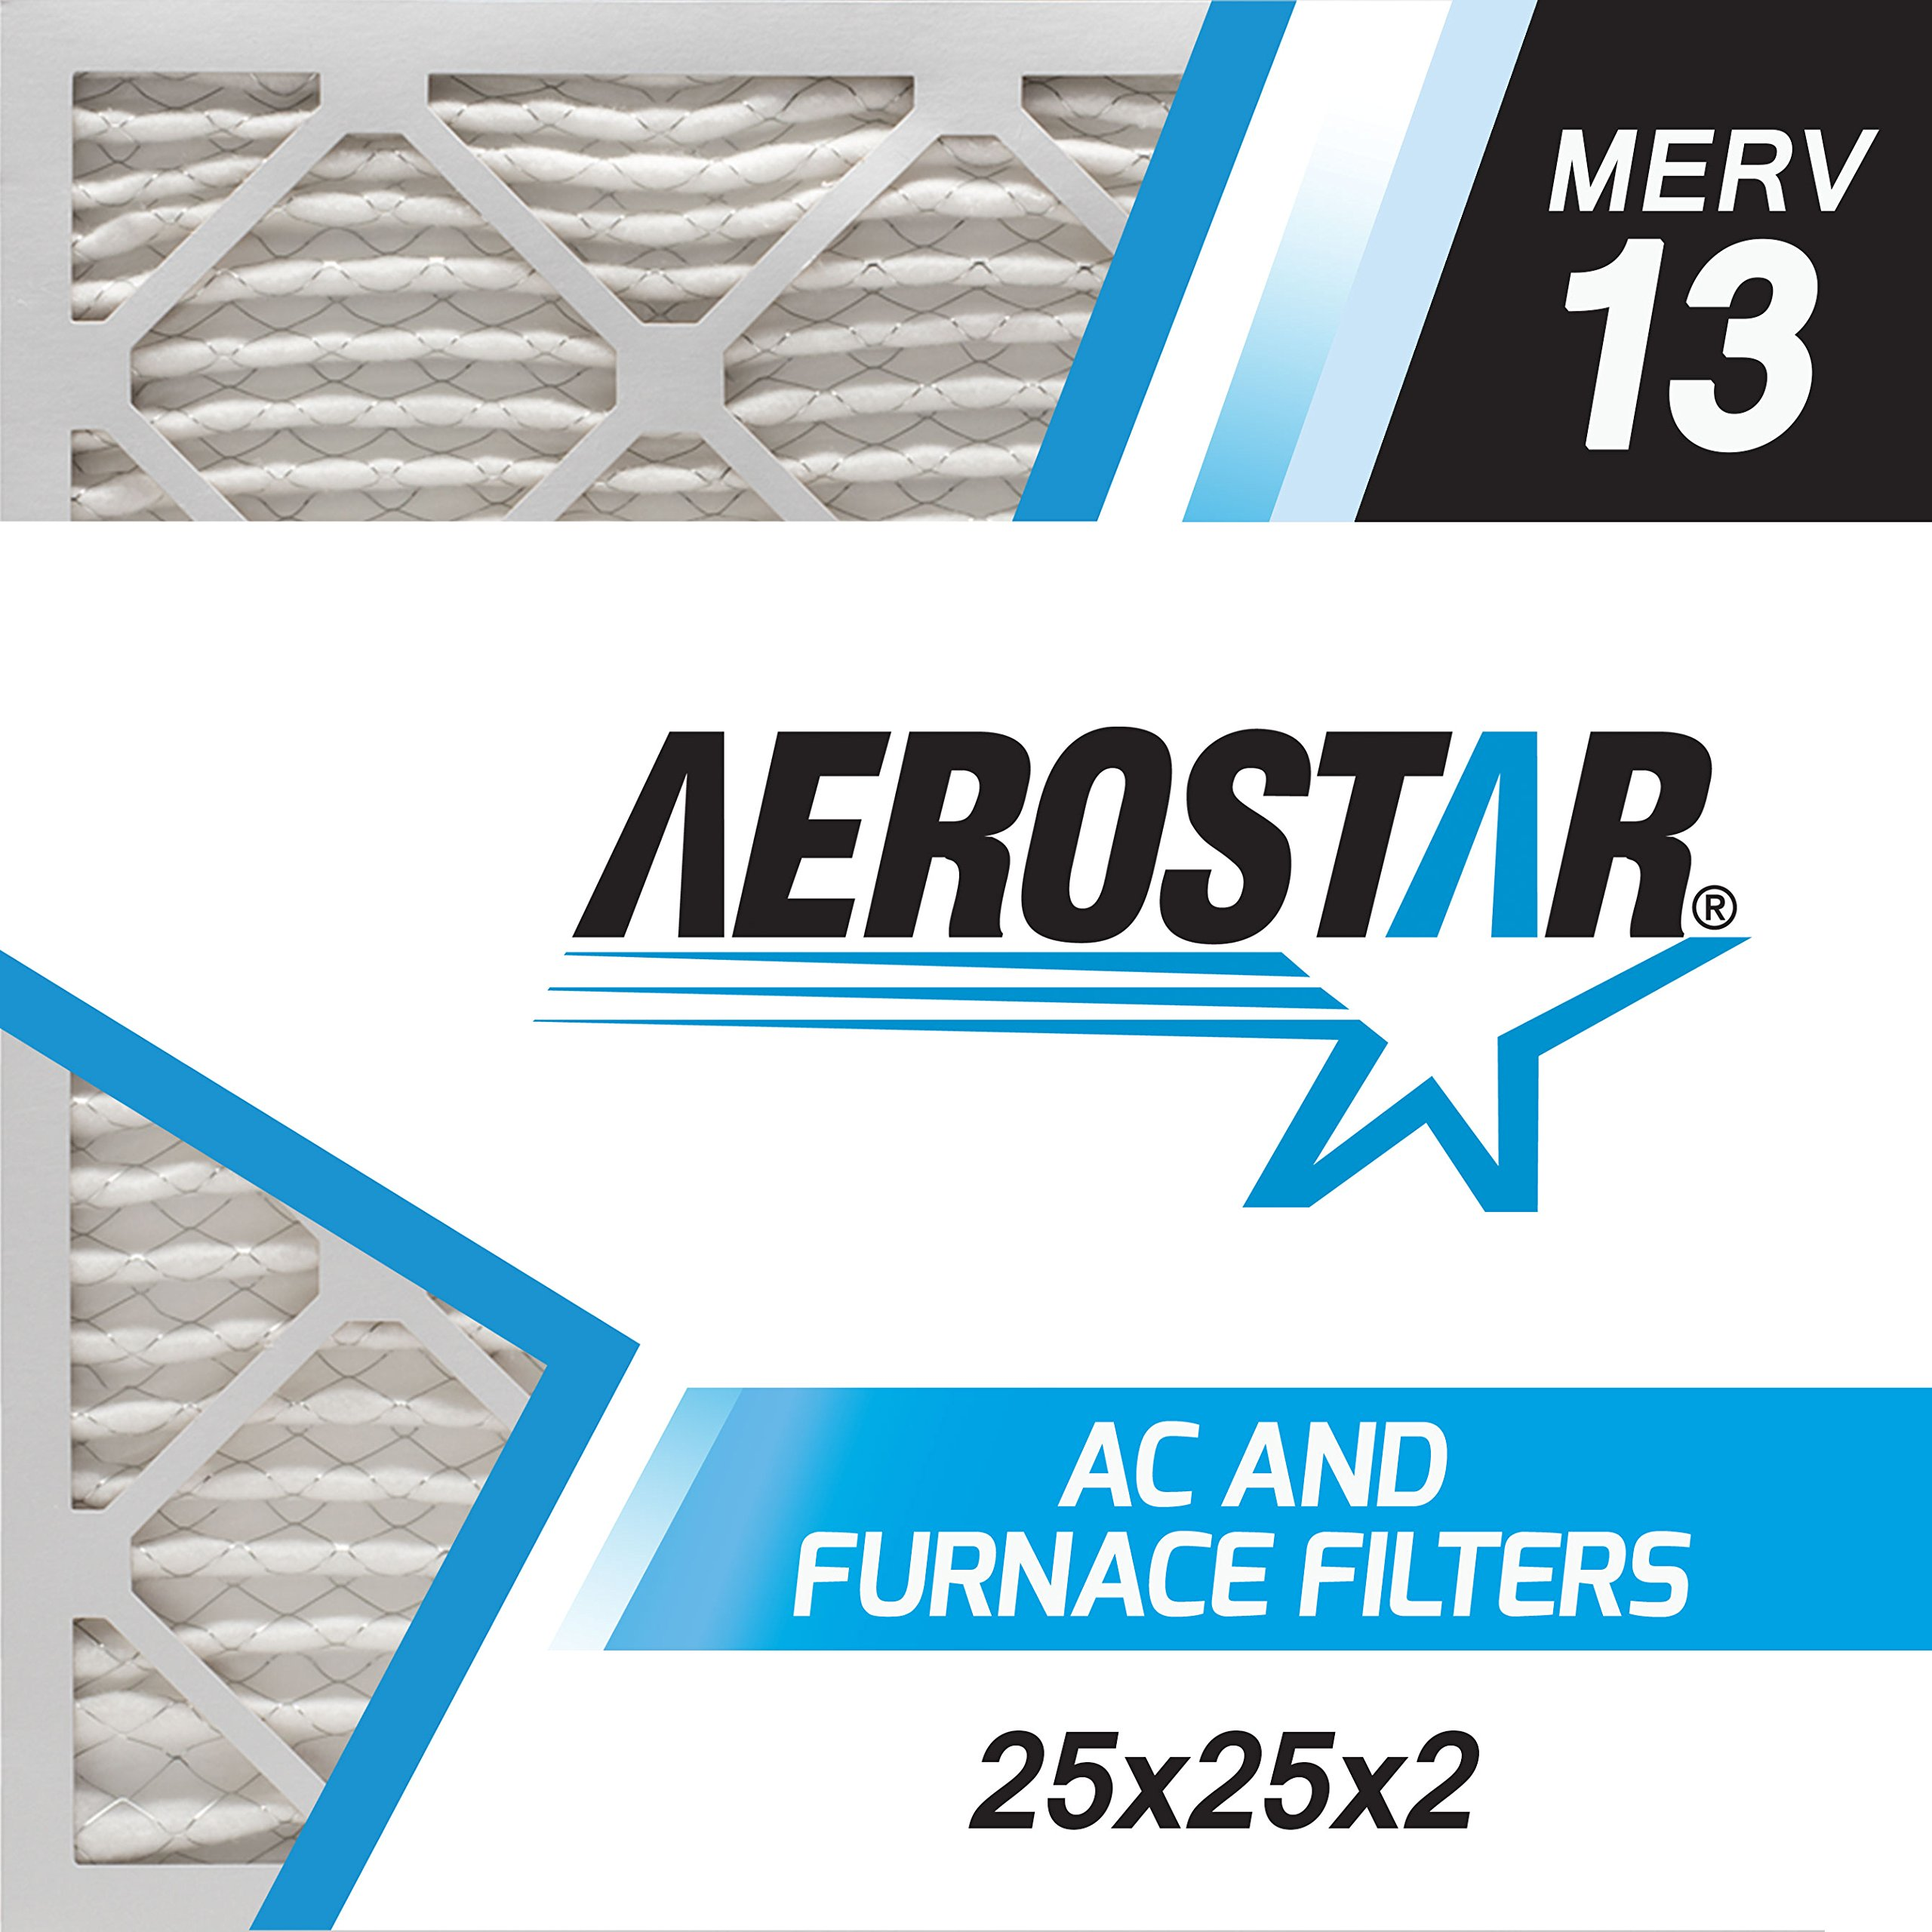 Aerostar 25x25x2 MERV 13, Pleated Air Filter, 25x25x2, Box of 6, Made in the USA by Aerostar